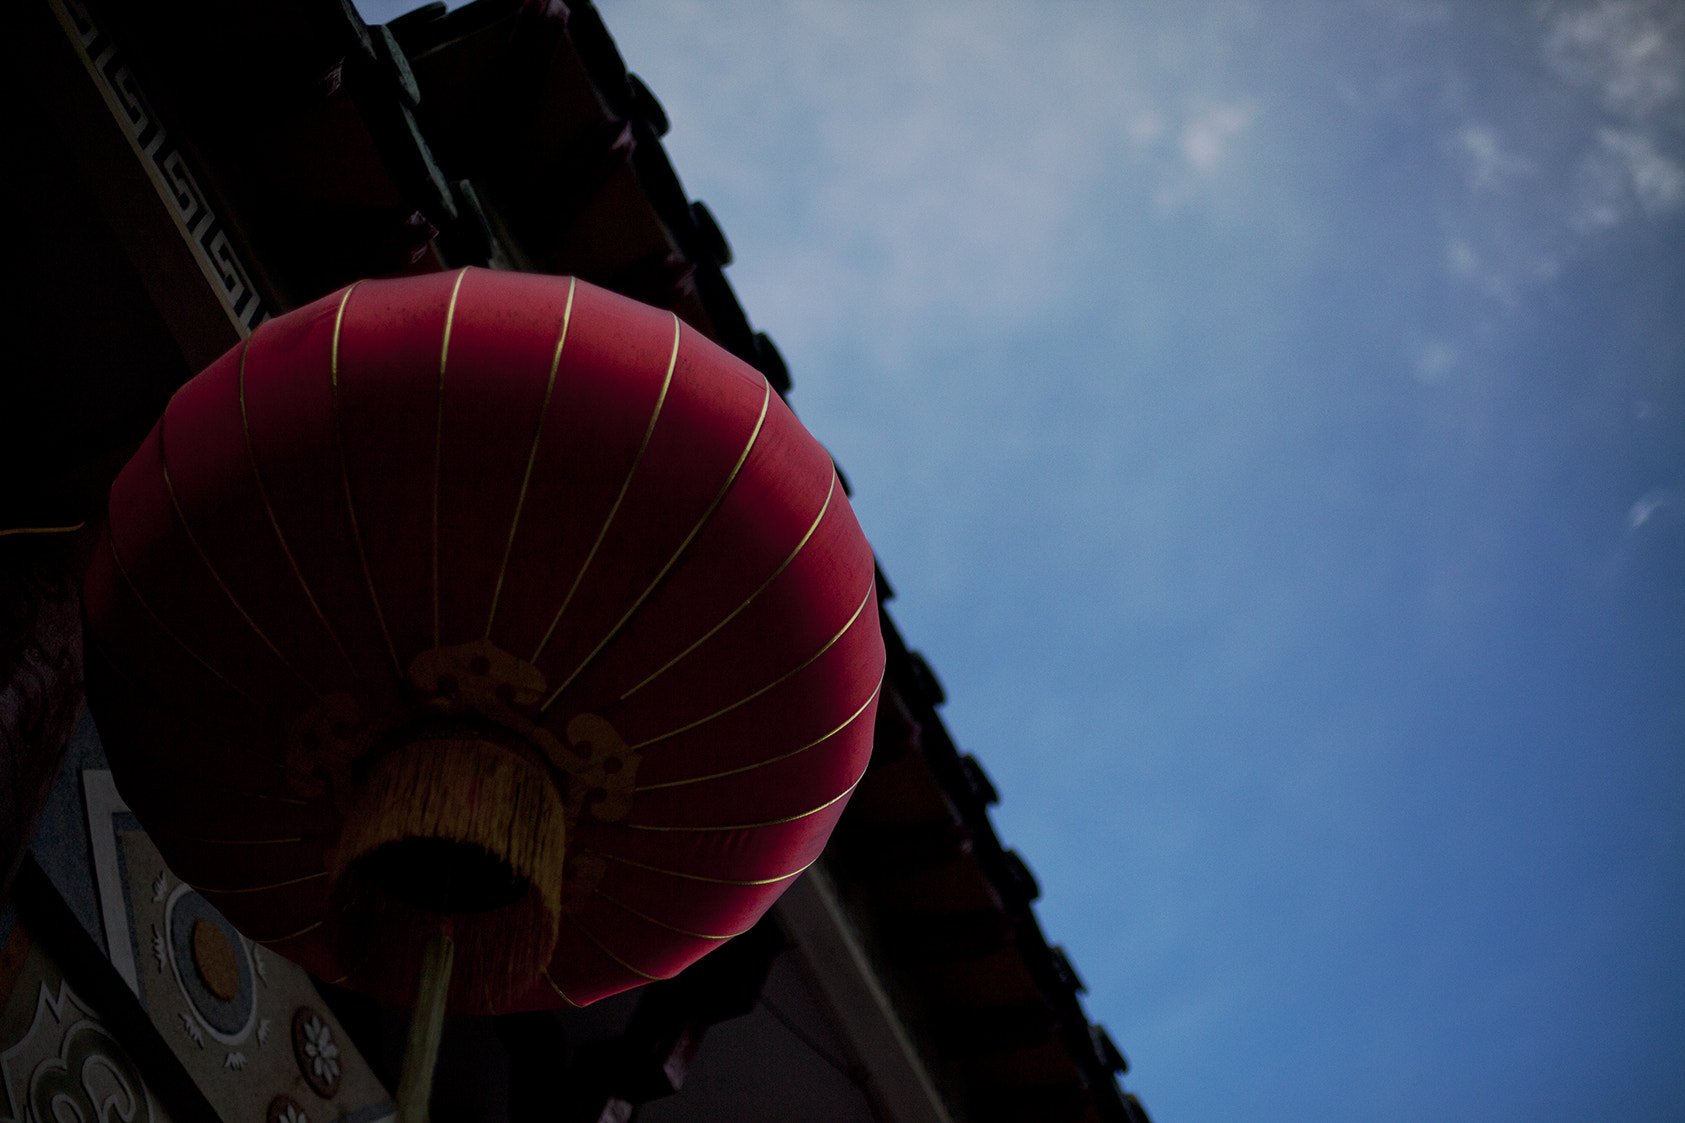 Photograph Lantern by Etienne Bossot on 500px